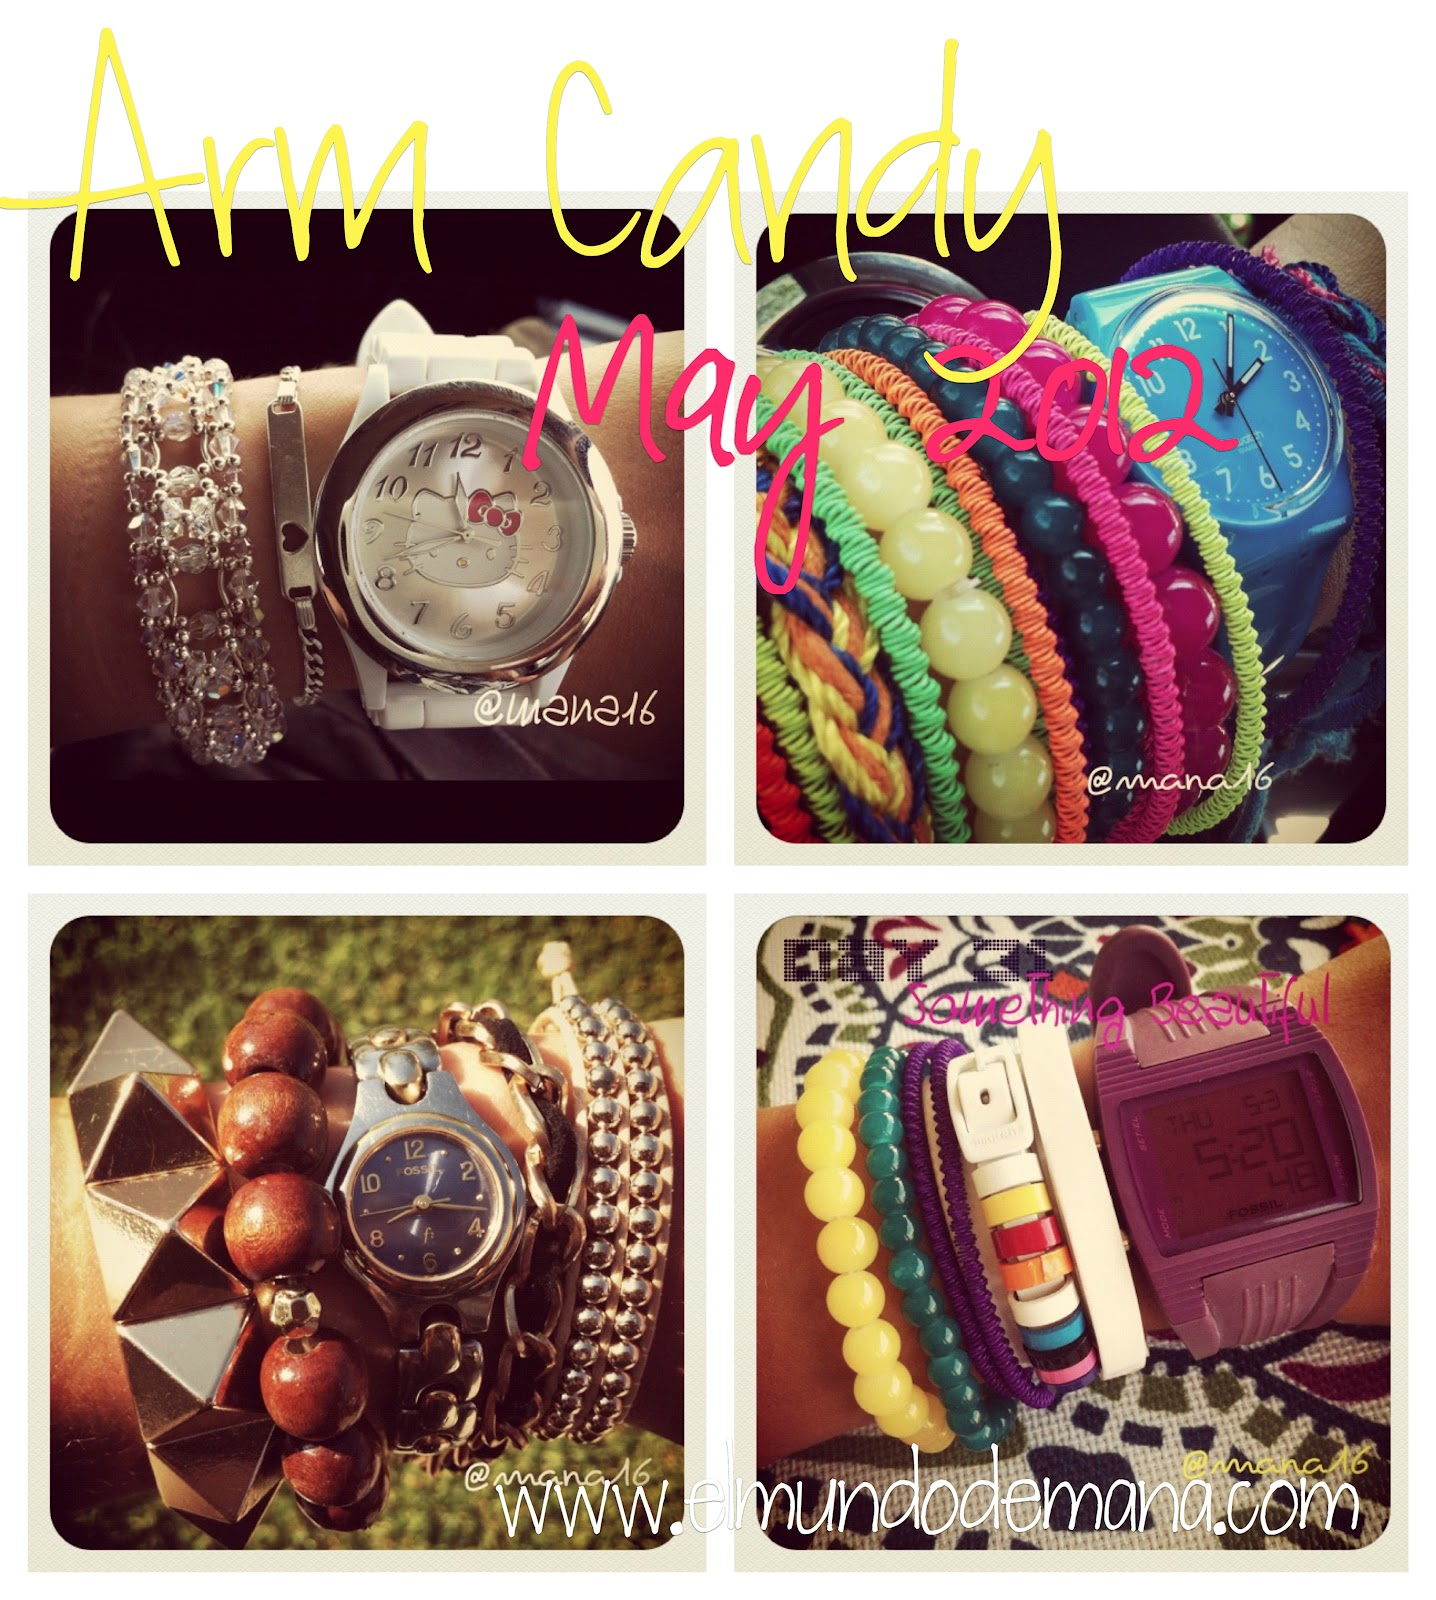 Instagram: Arm Candy Mayo 2012